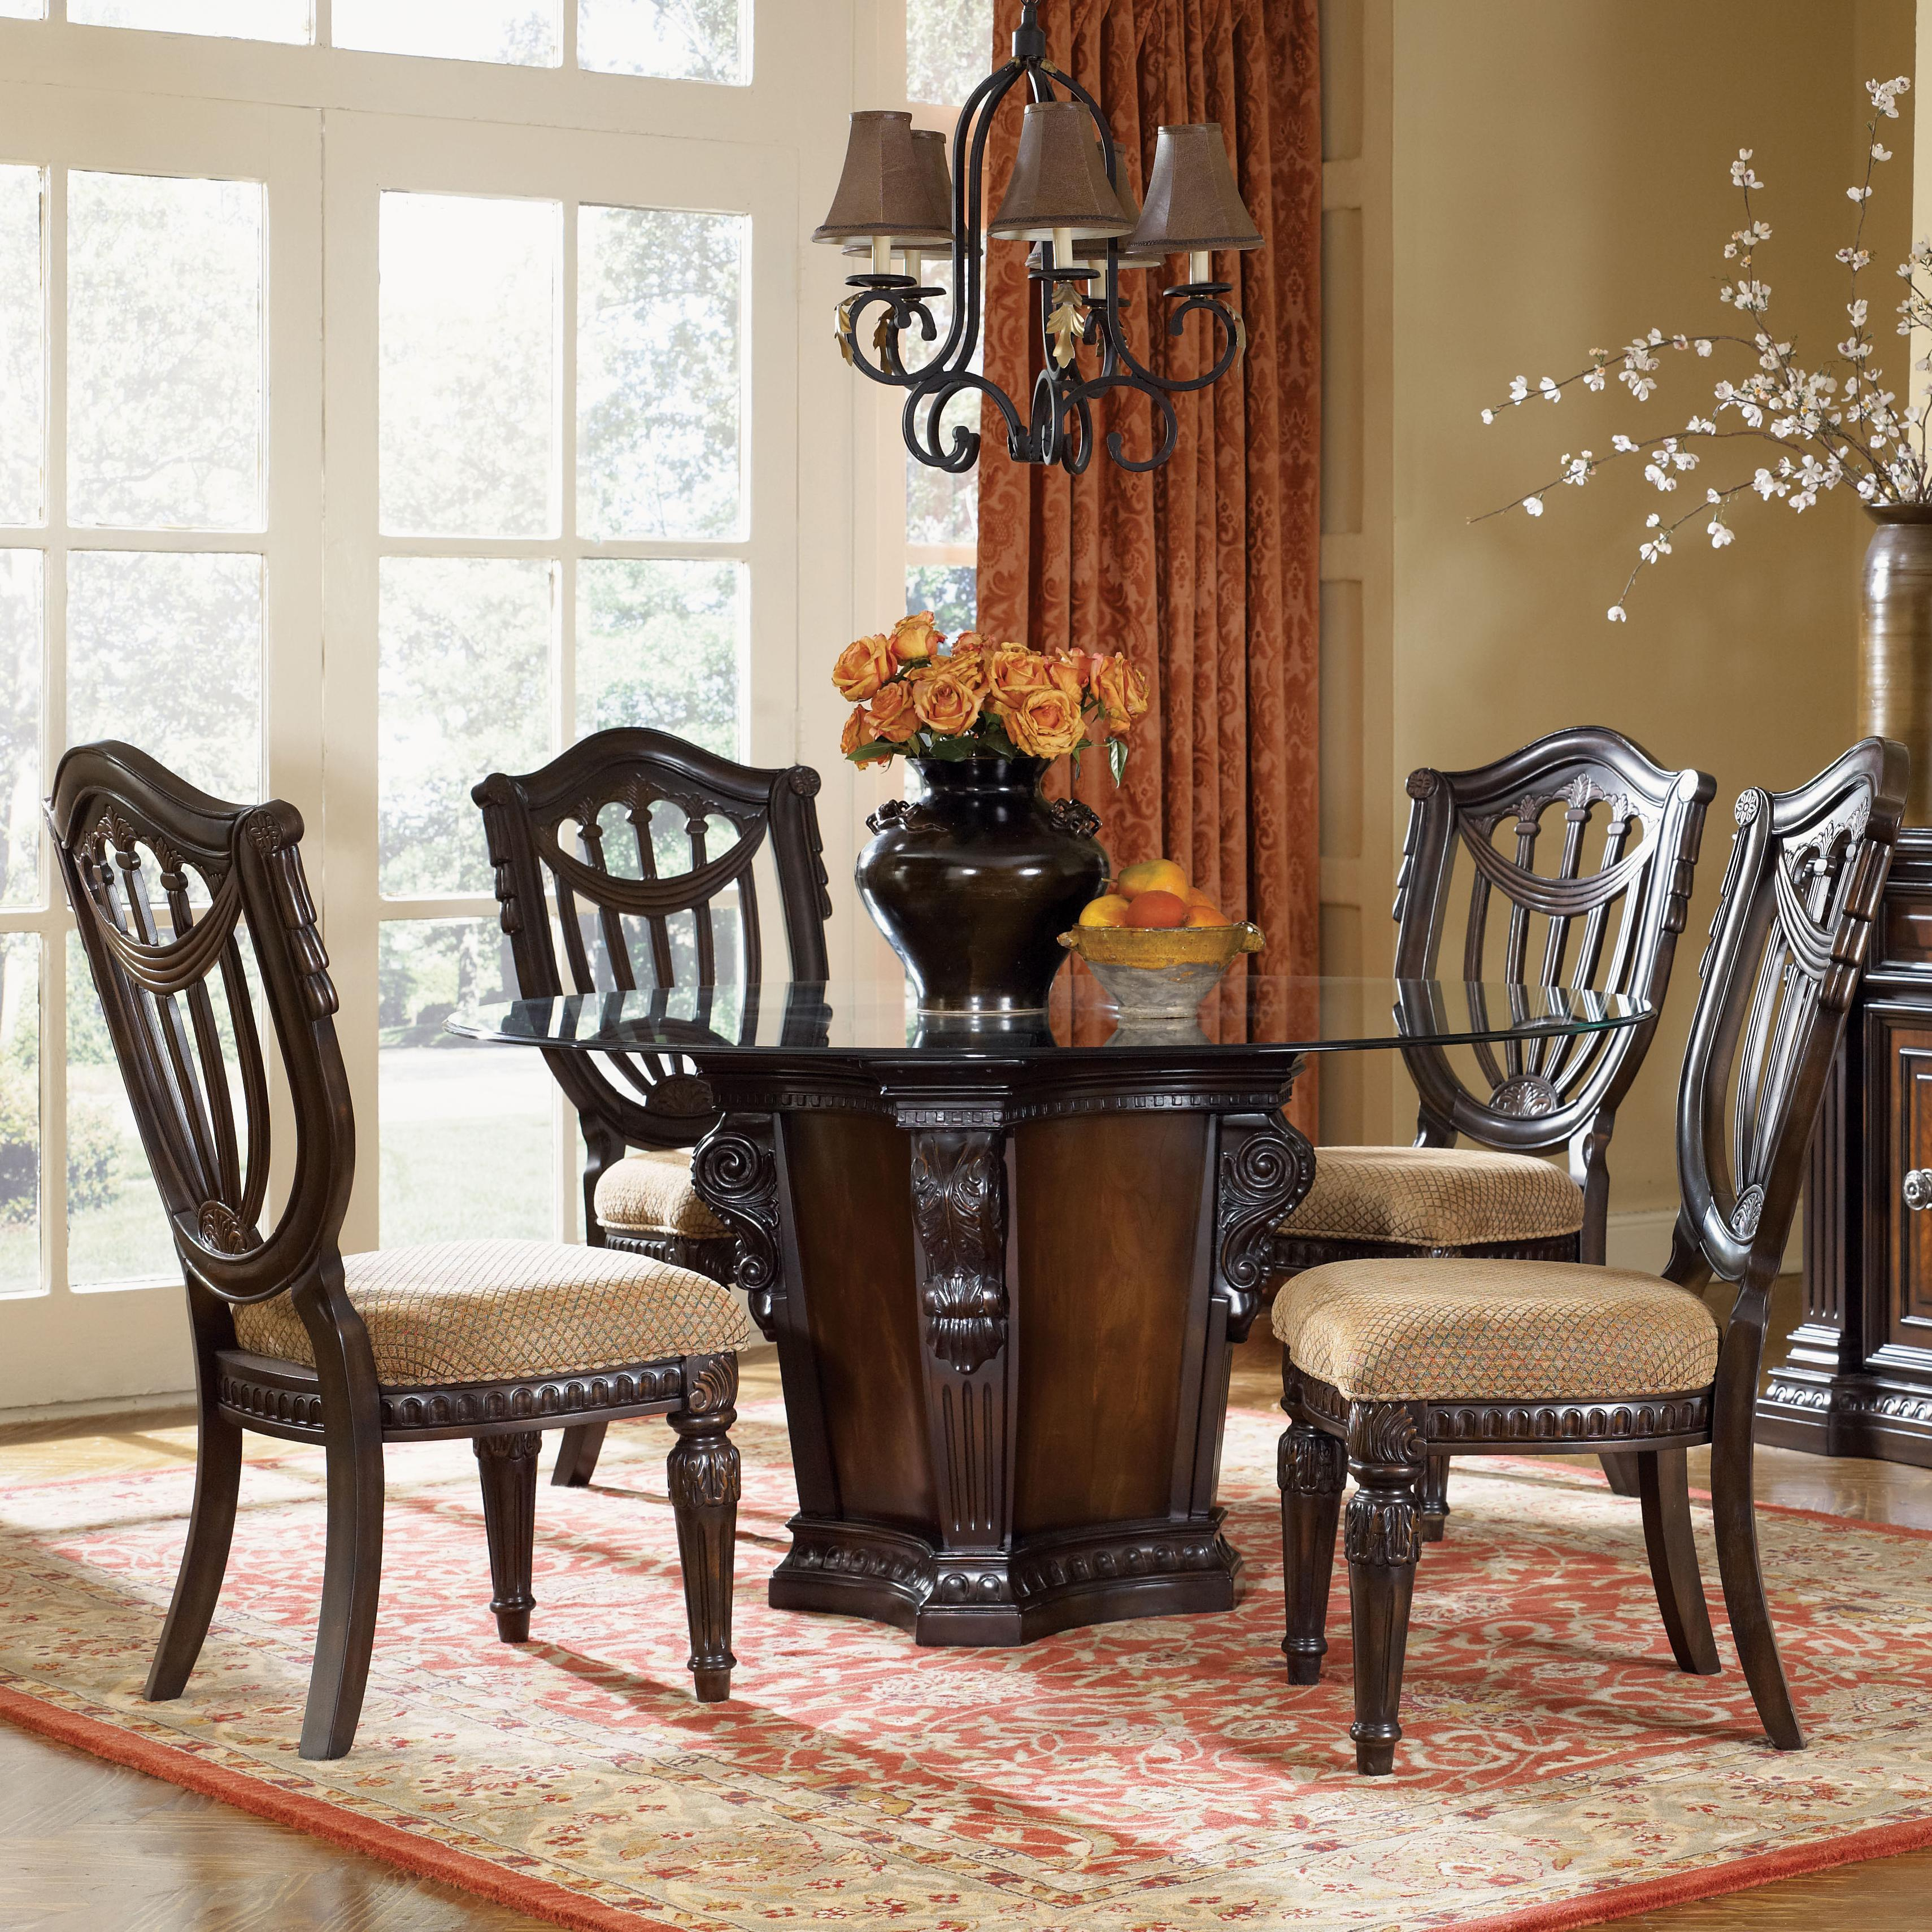 Fairmont Designs Grand Estates 5 Piece Dining Table And Chairs Set In Recent 5 Piece Dining Sets (#10 of 20)